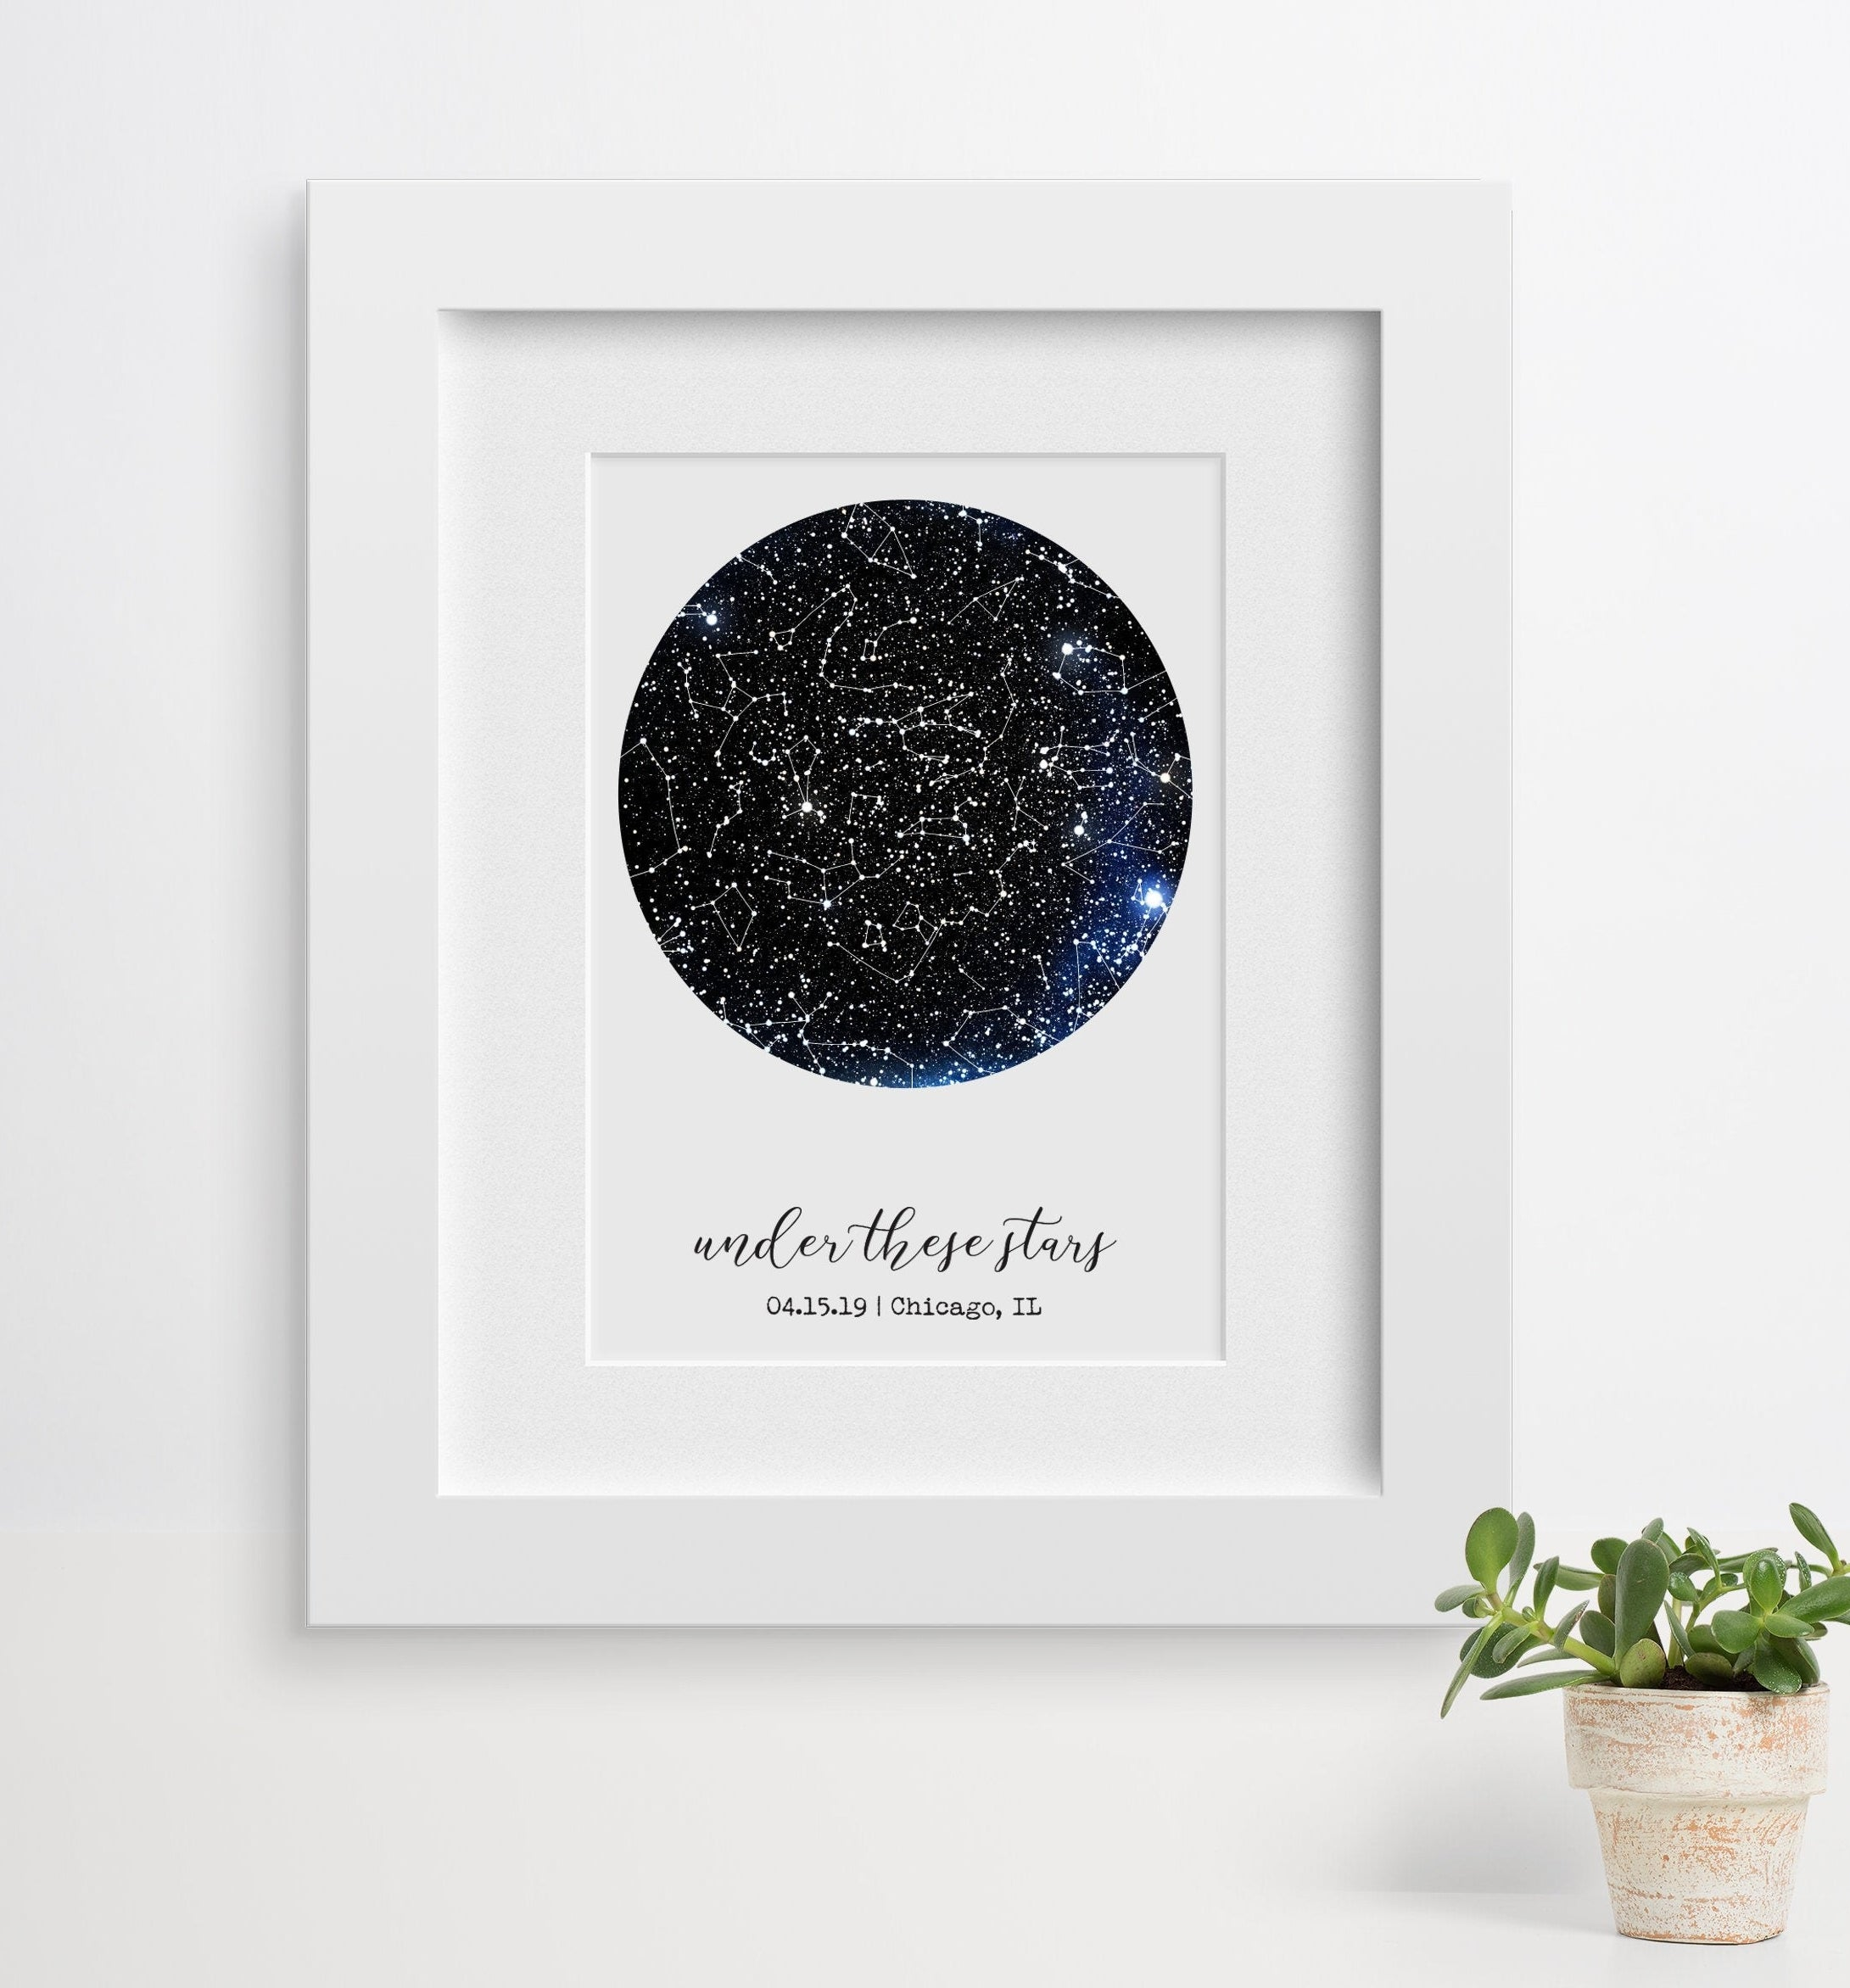 """A constellation print that reads """"under the starts 04.15.19 Chicago, IL"""""""